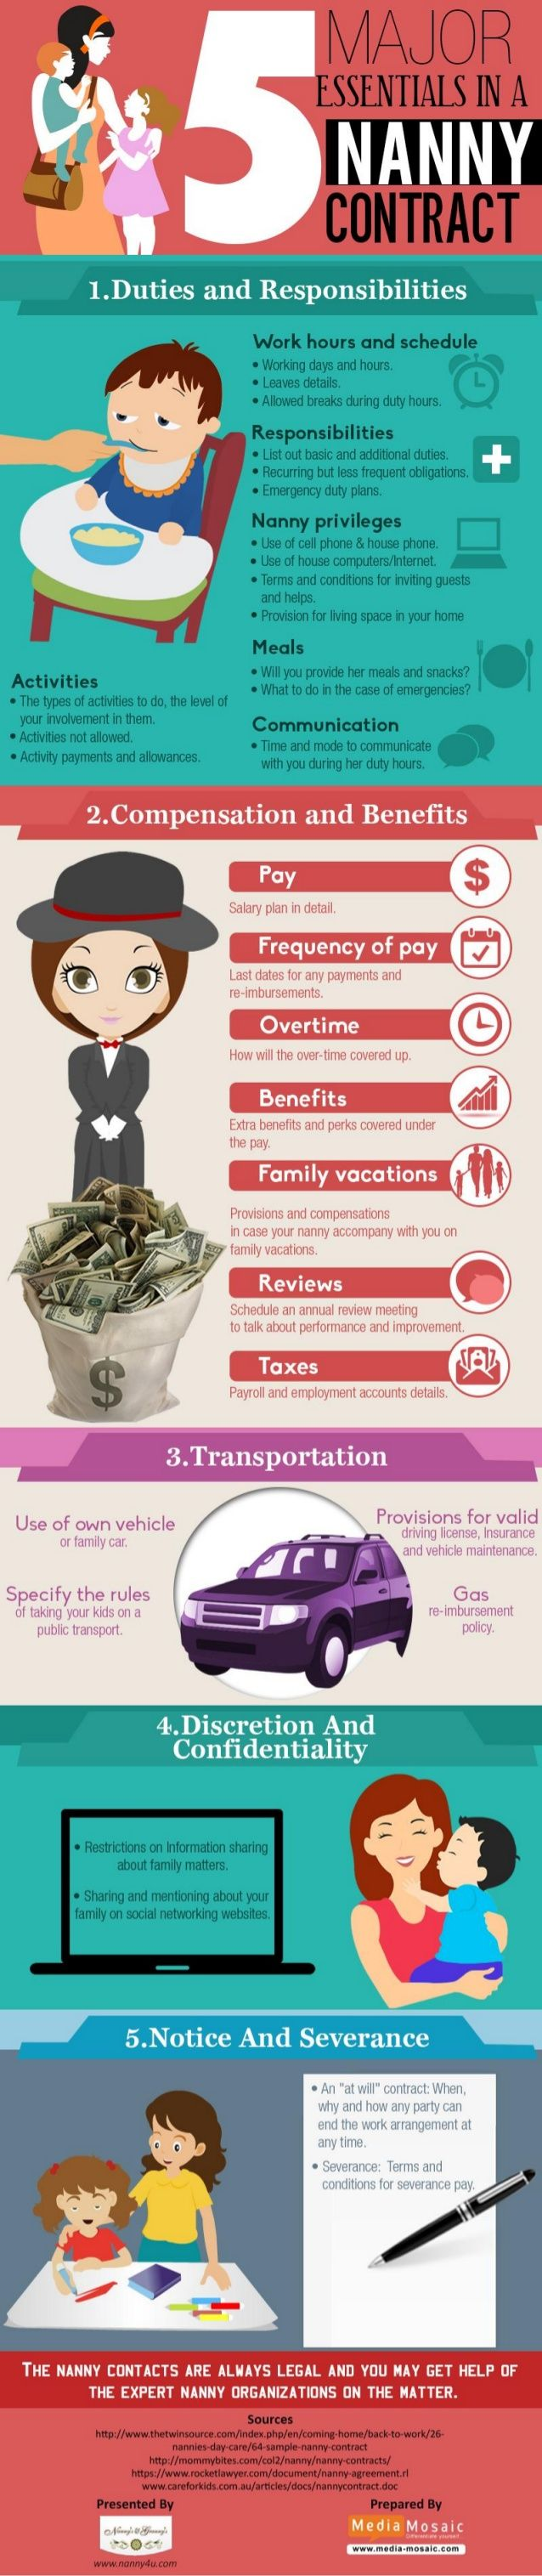 5 major essentials in a nanny contract[InfoGraphic]